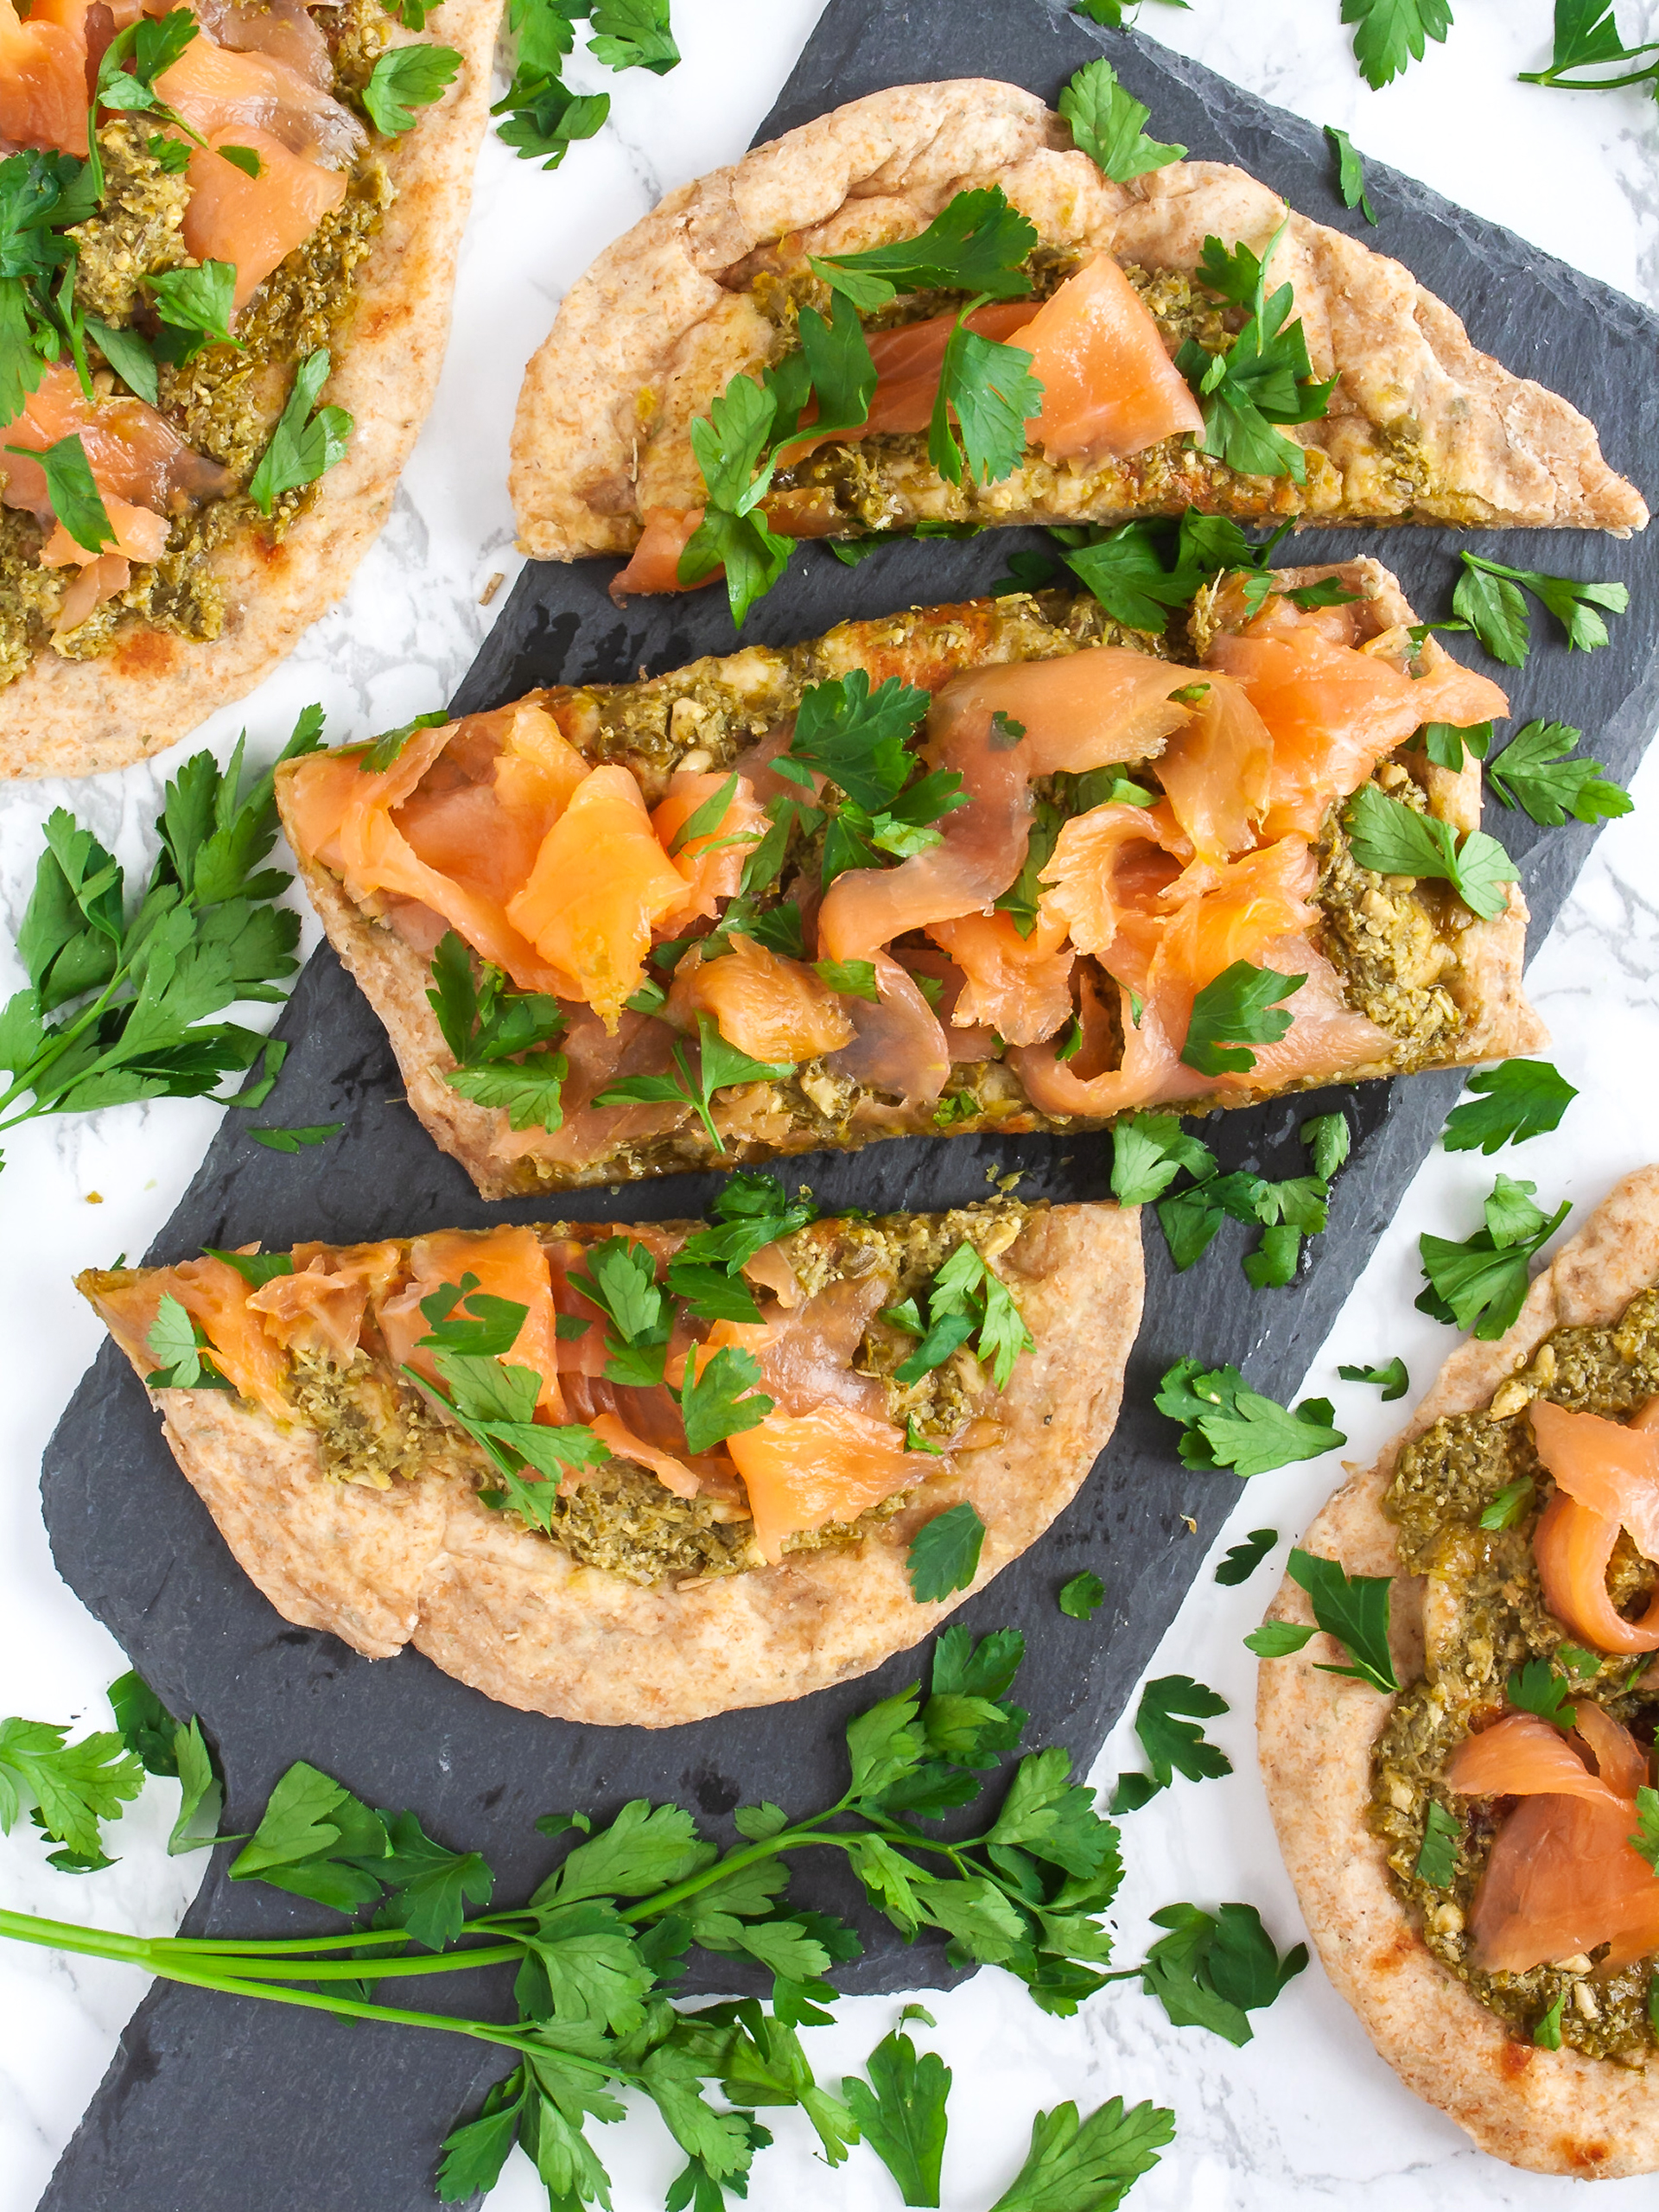 Smoked Salmon and Pesto Wholemeal Flatbread Preview